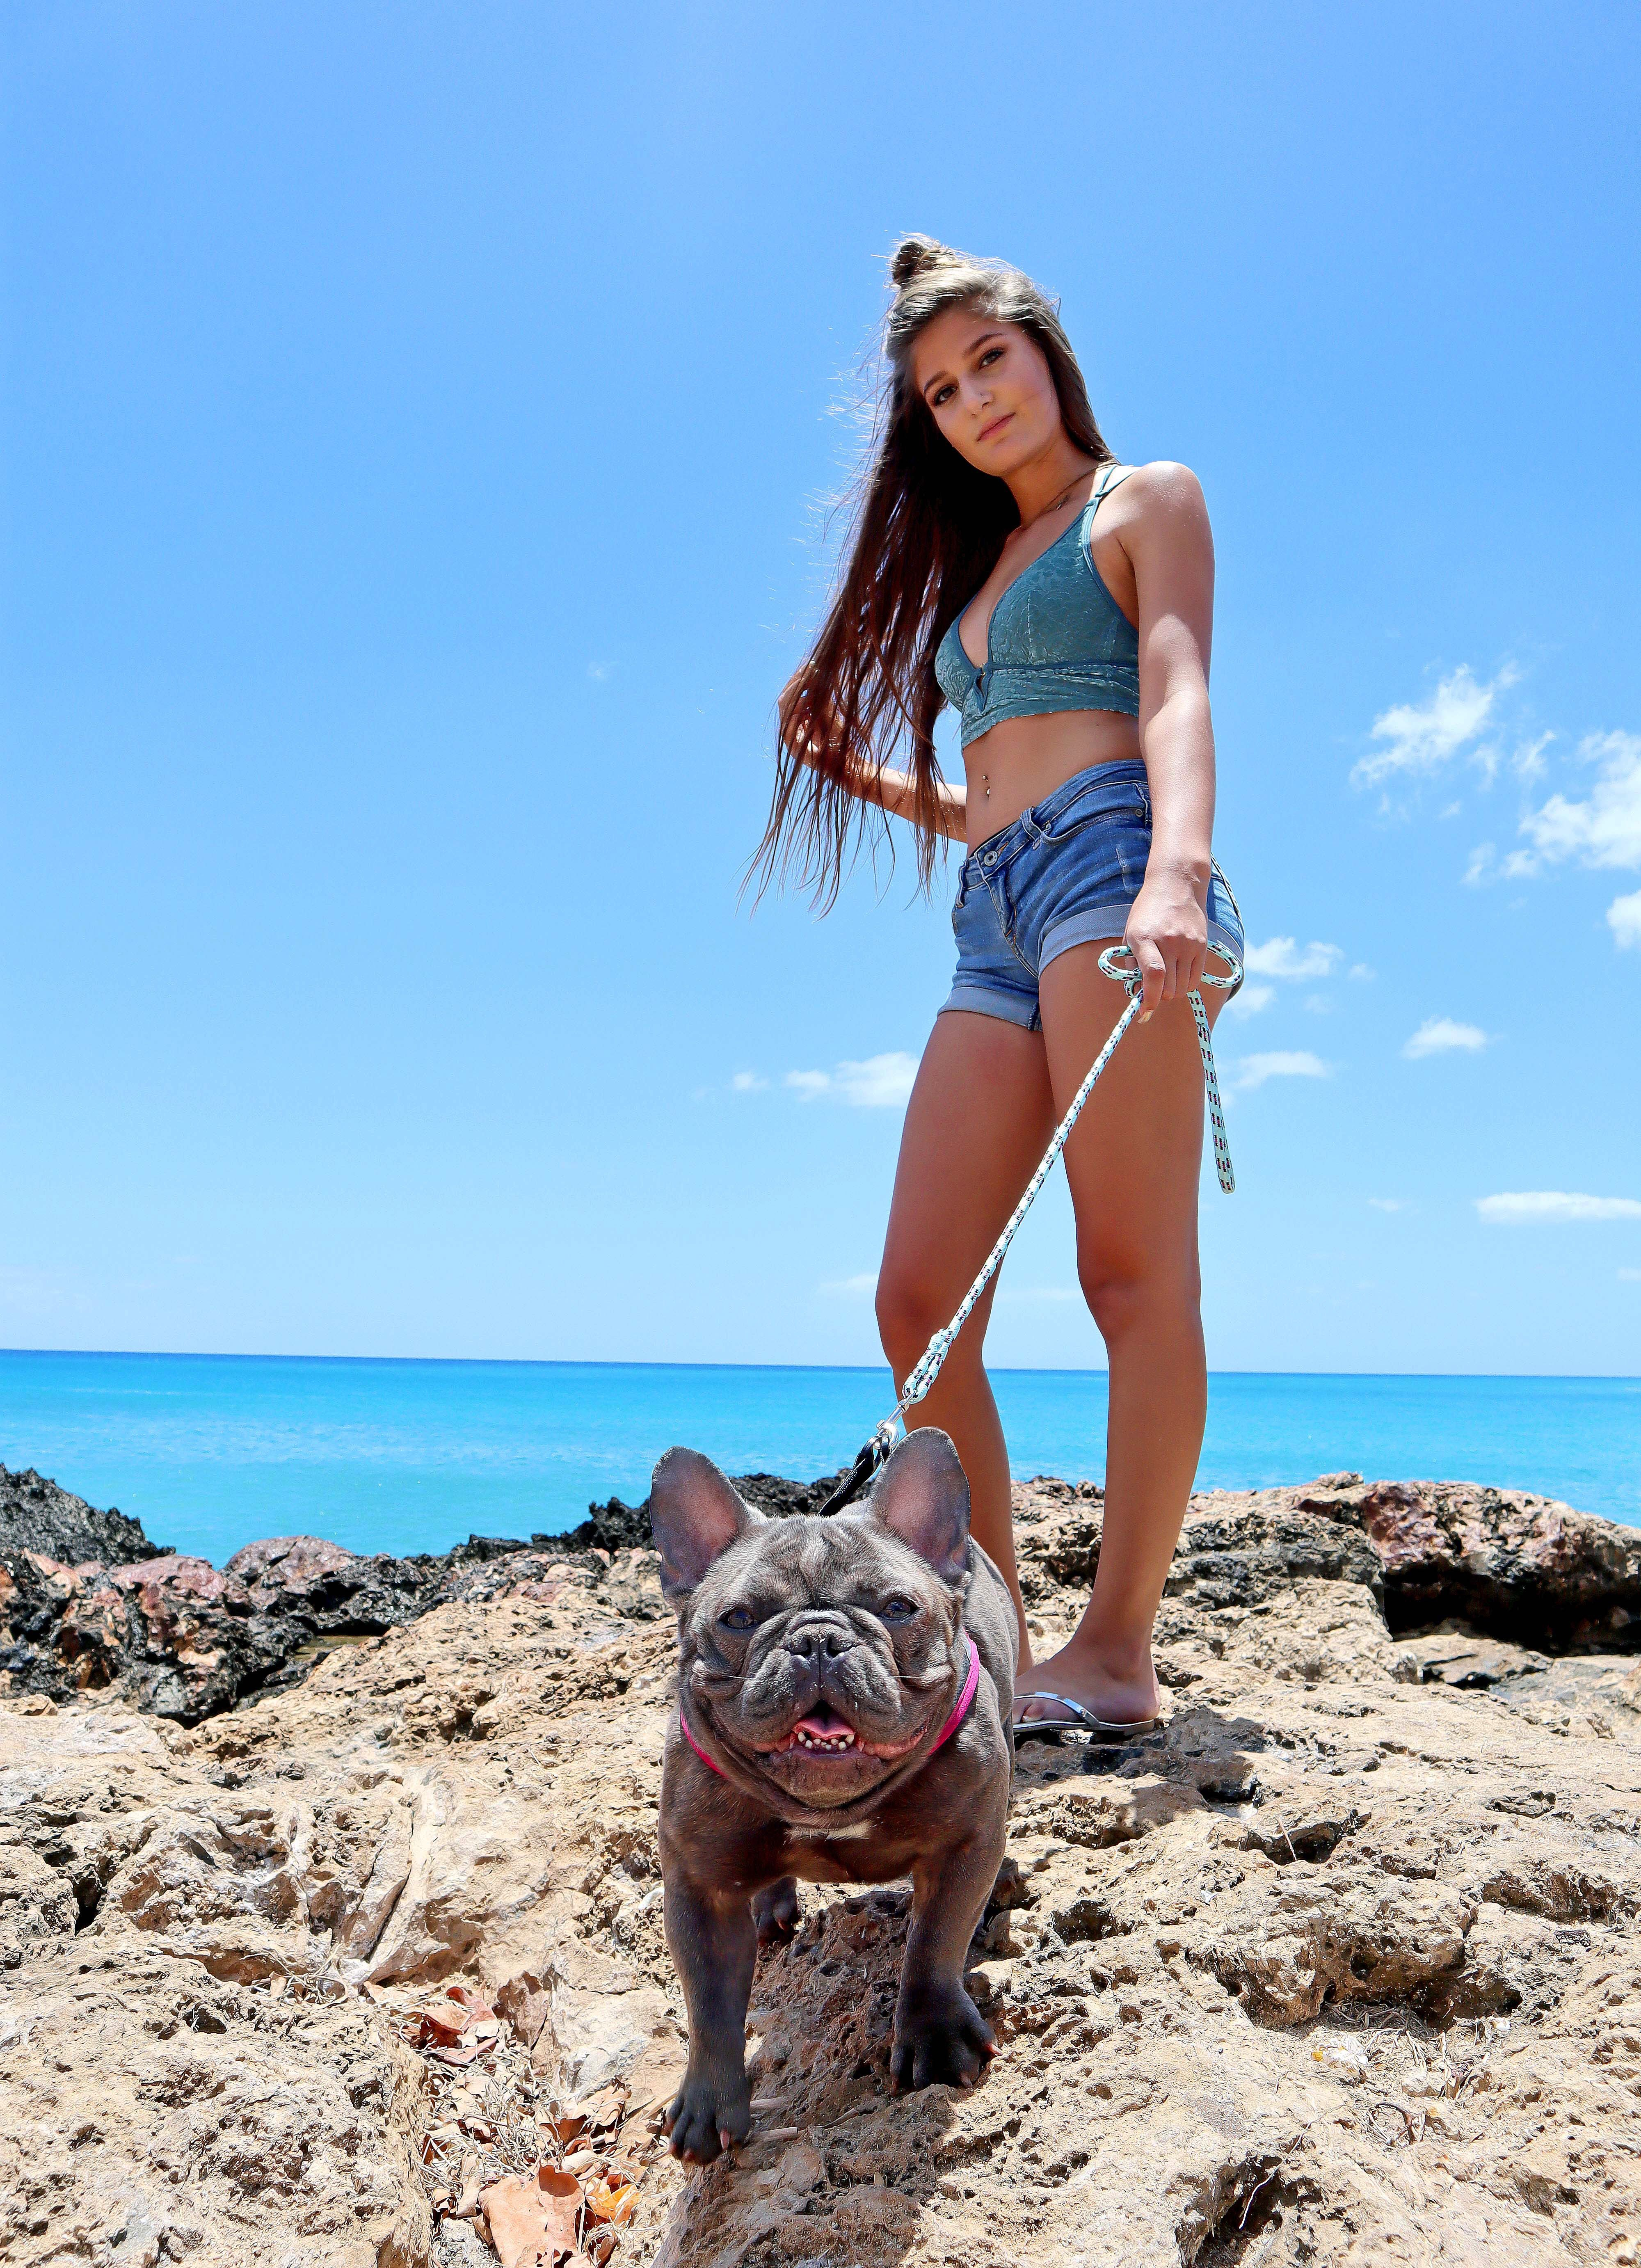 Hawaii Ocean Model Eleianna And French Bulldog Luxe All In